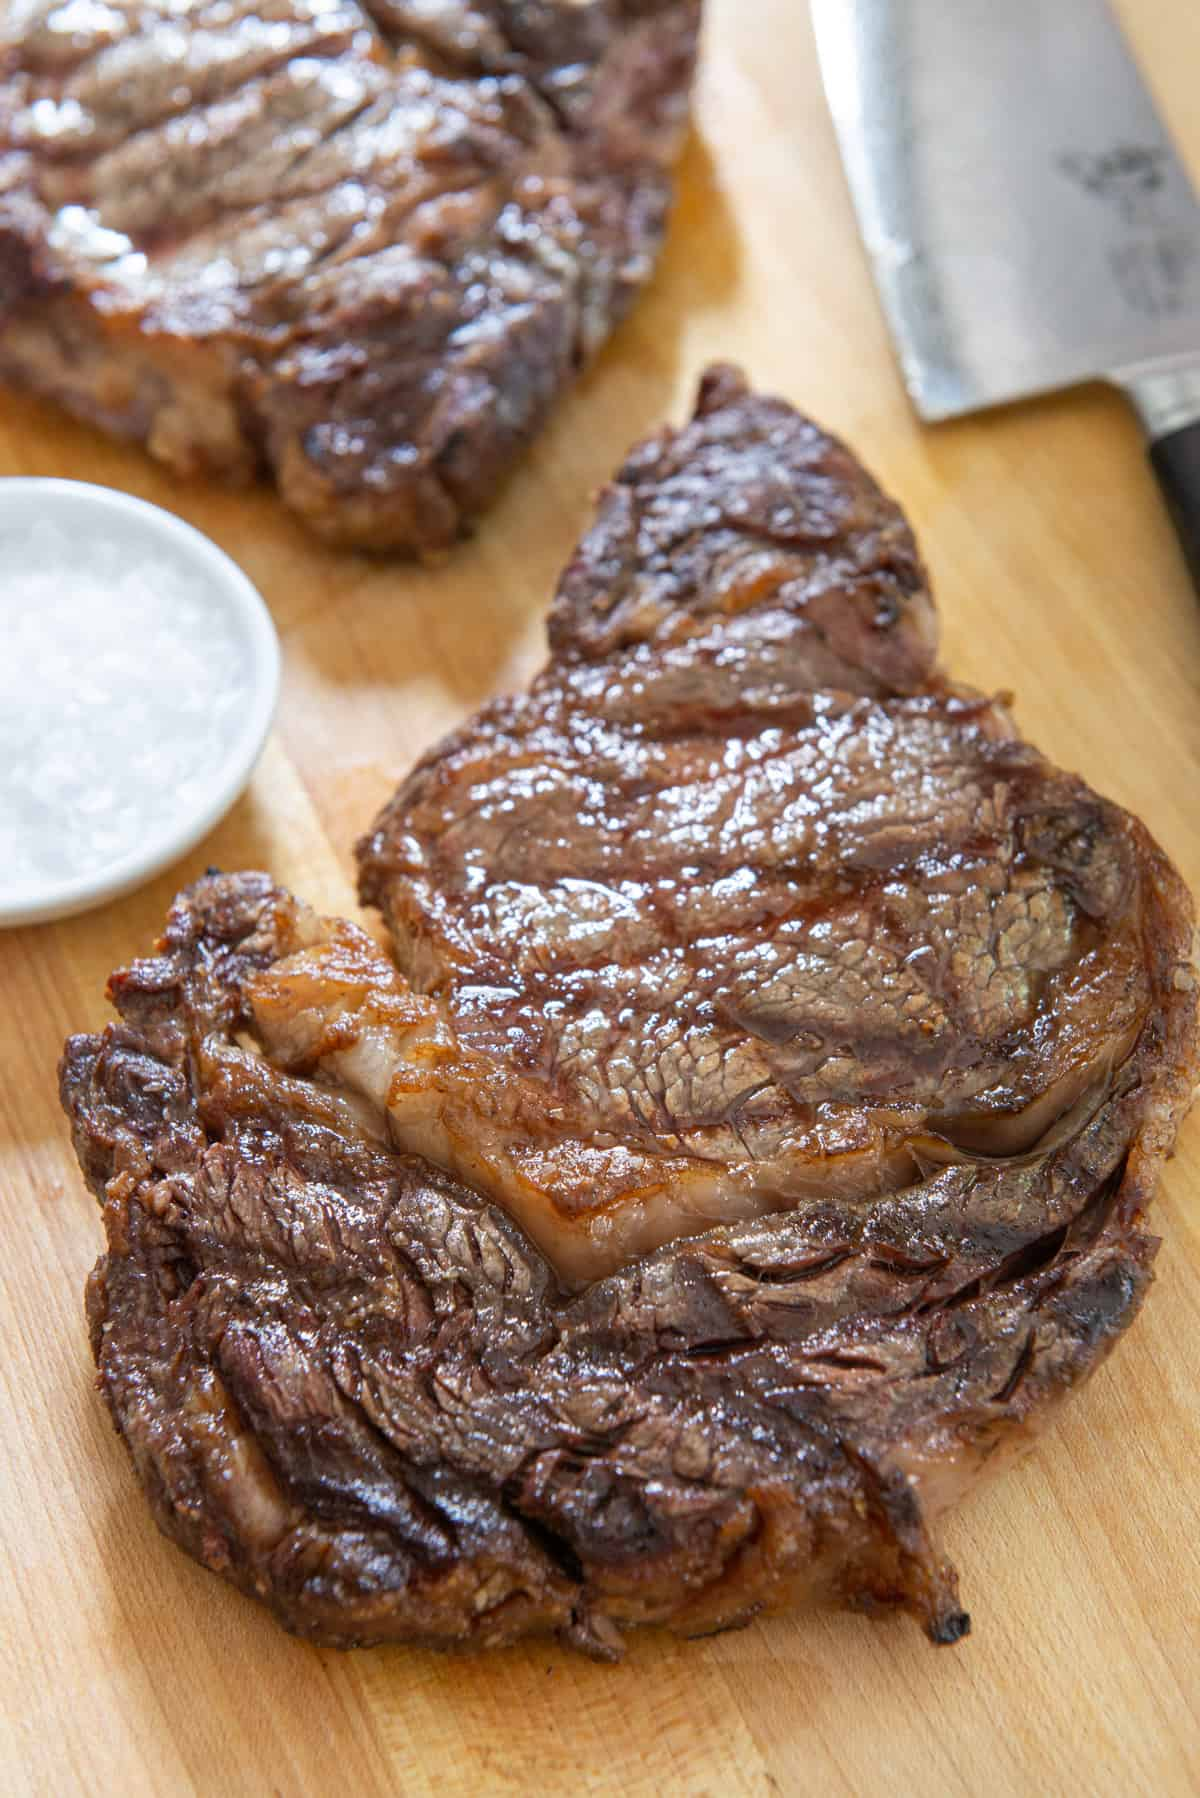 Grilled Ribeye on a Wooden Board